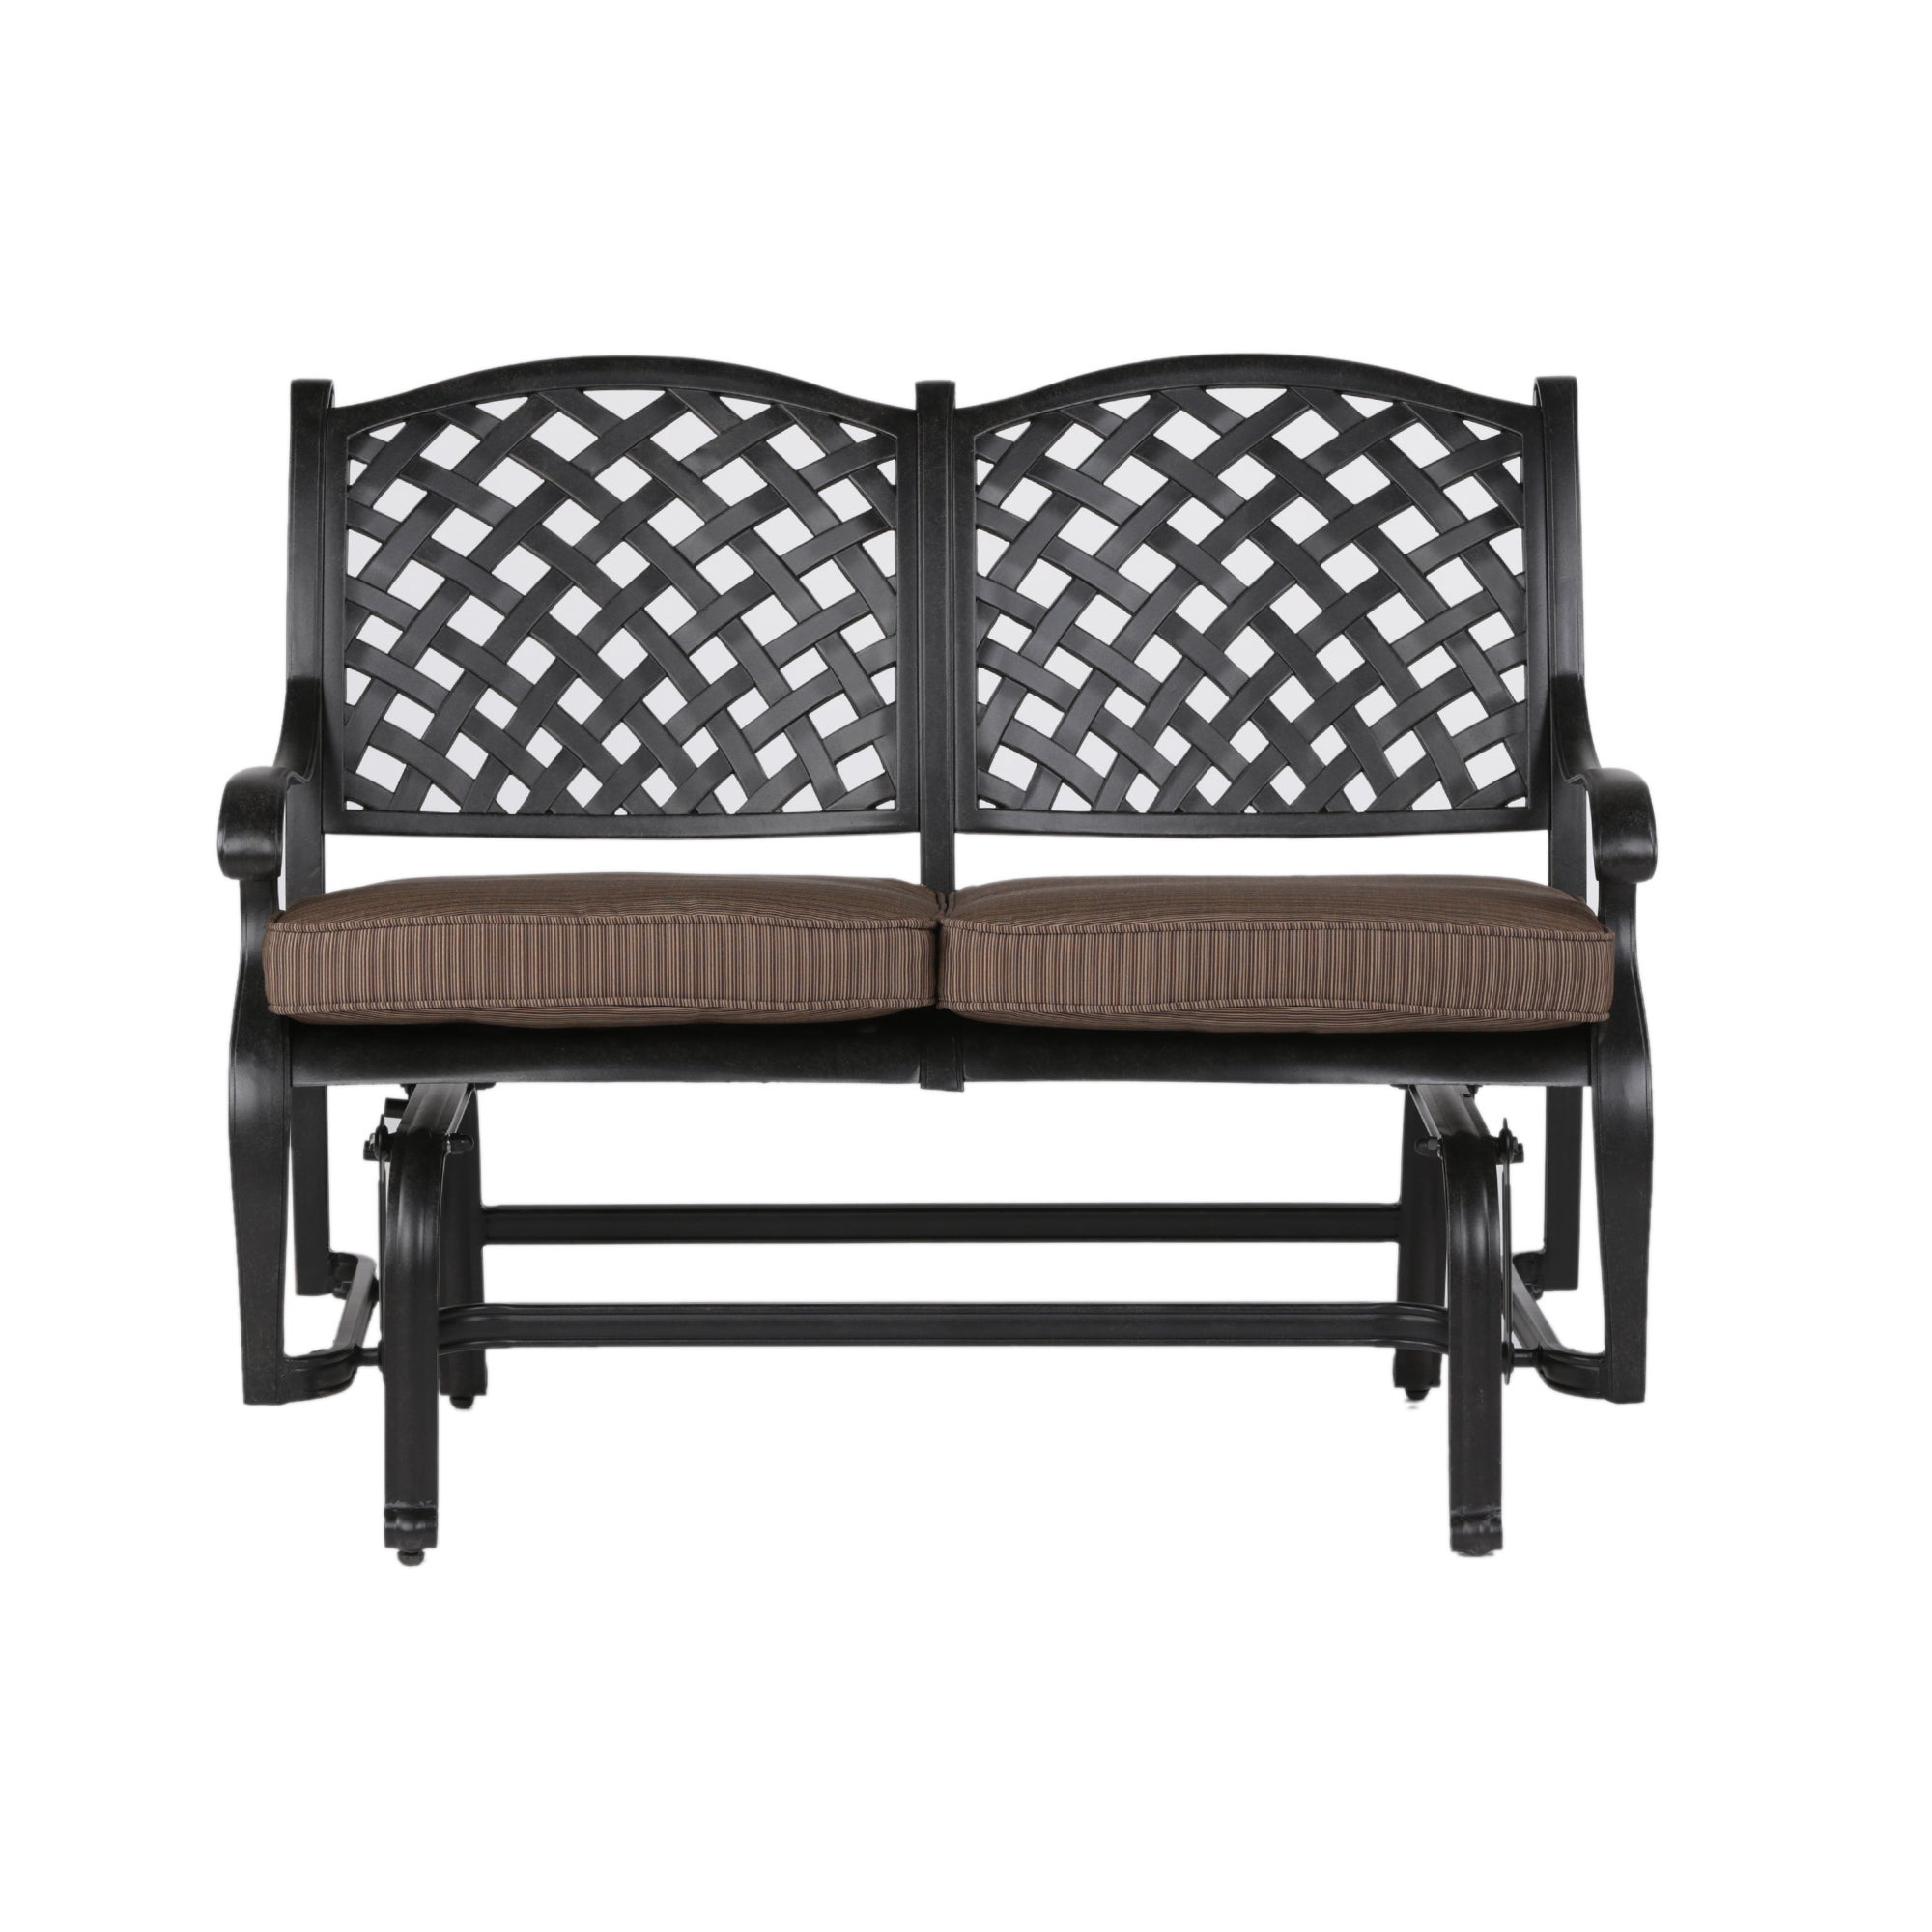 South Ponto Aluminum Bench Glider With Cushion Pertaining To Best And Newest Aluminum Glider Benches With Cushion (View 26 of 30)